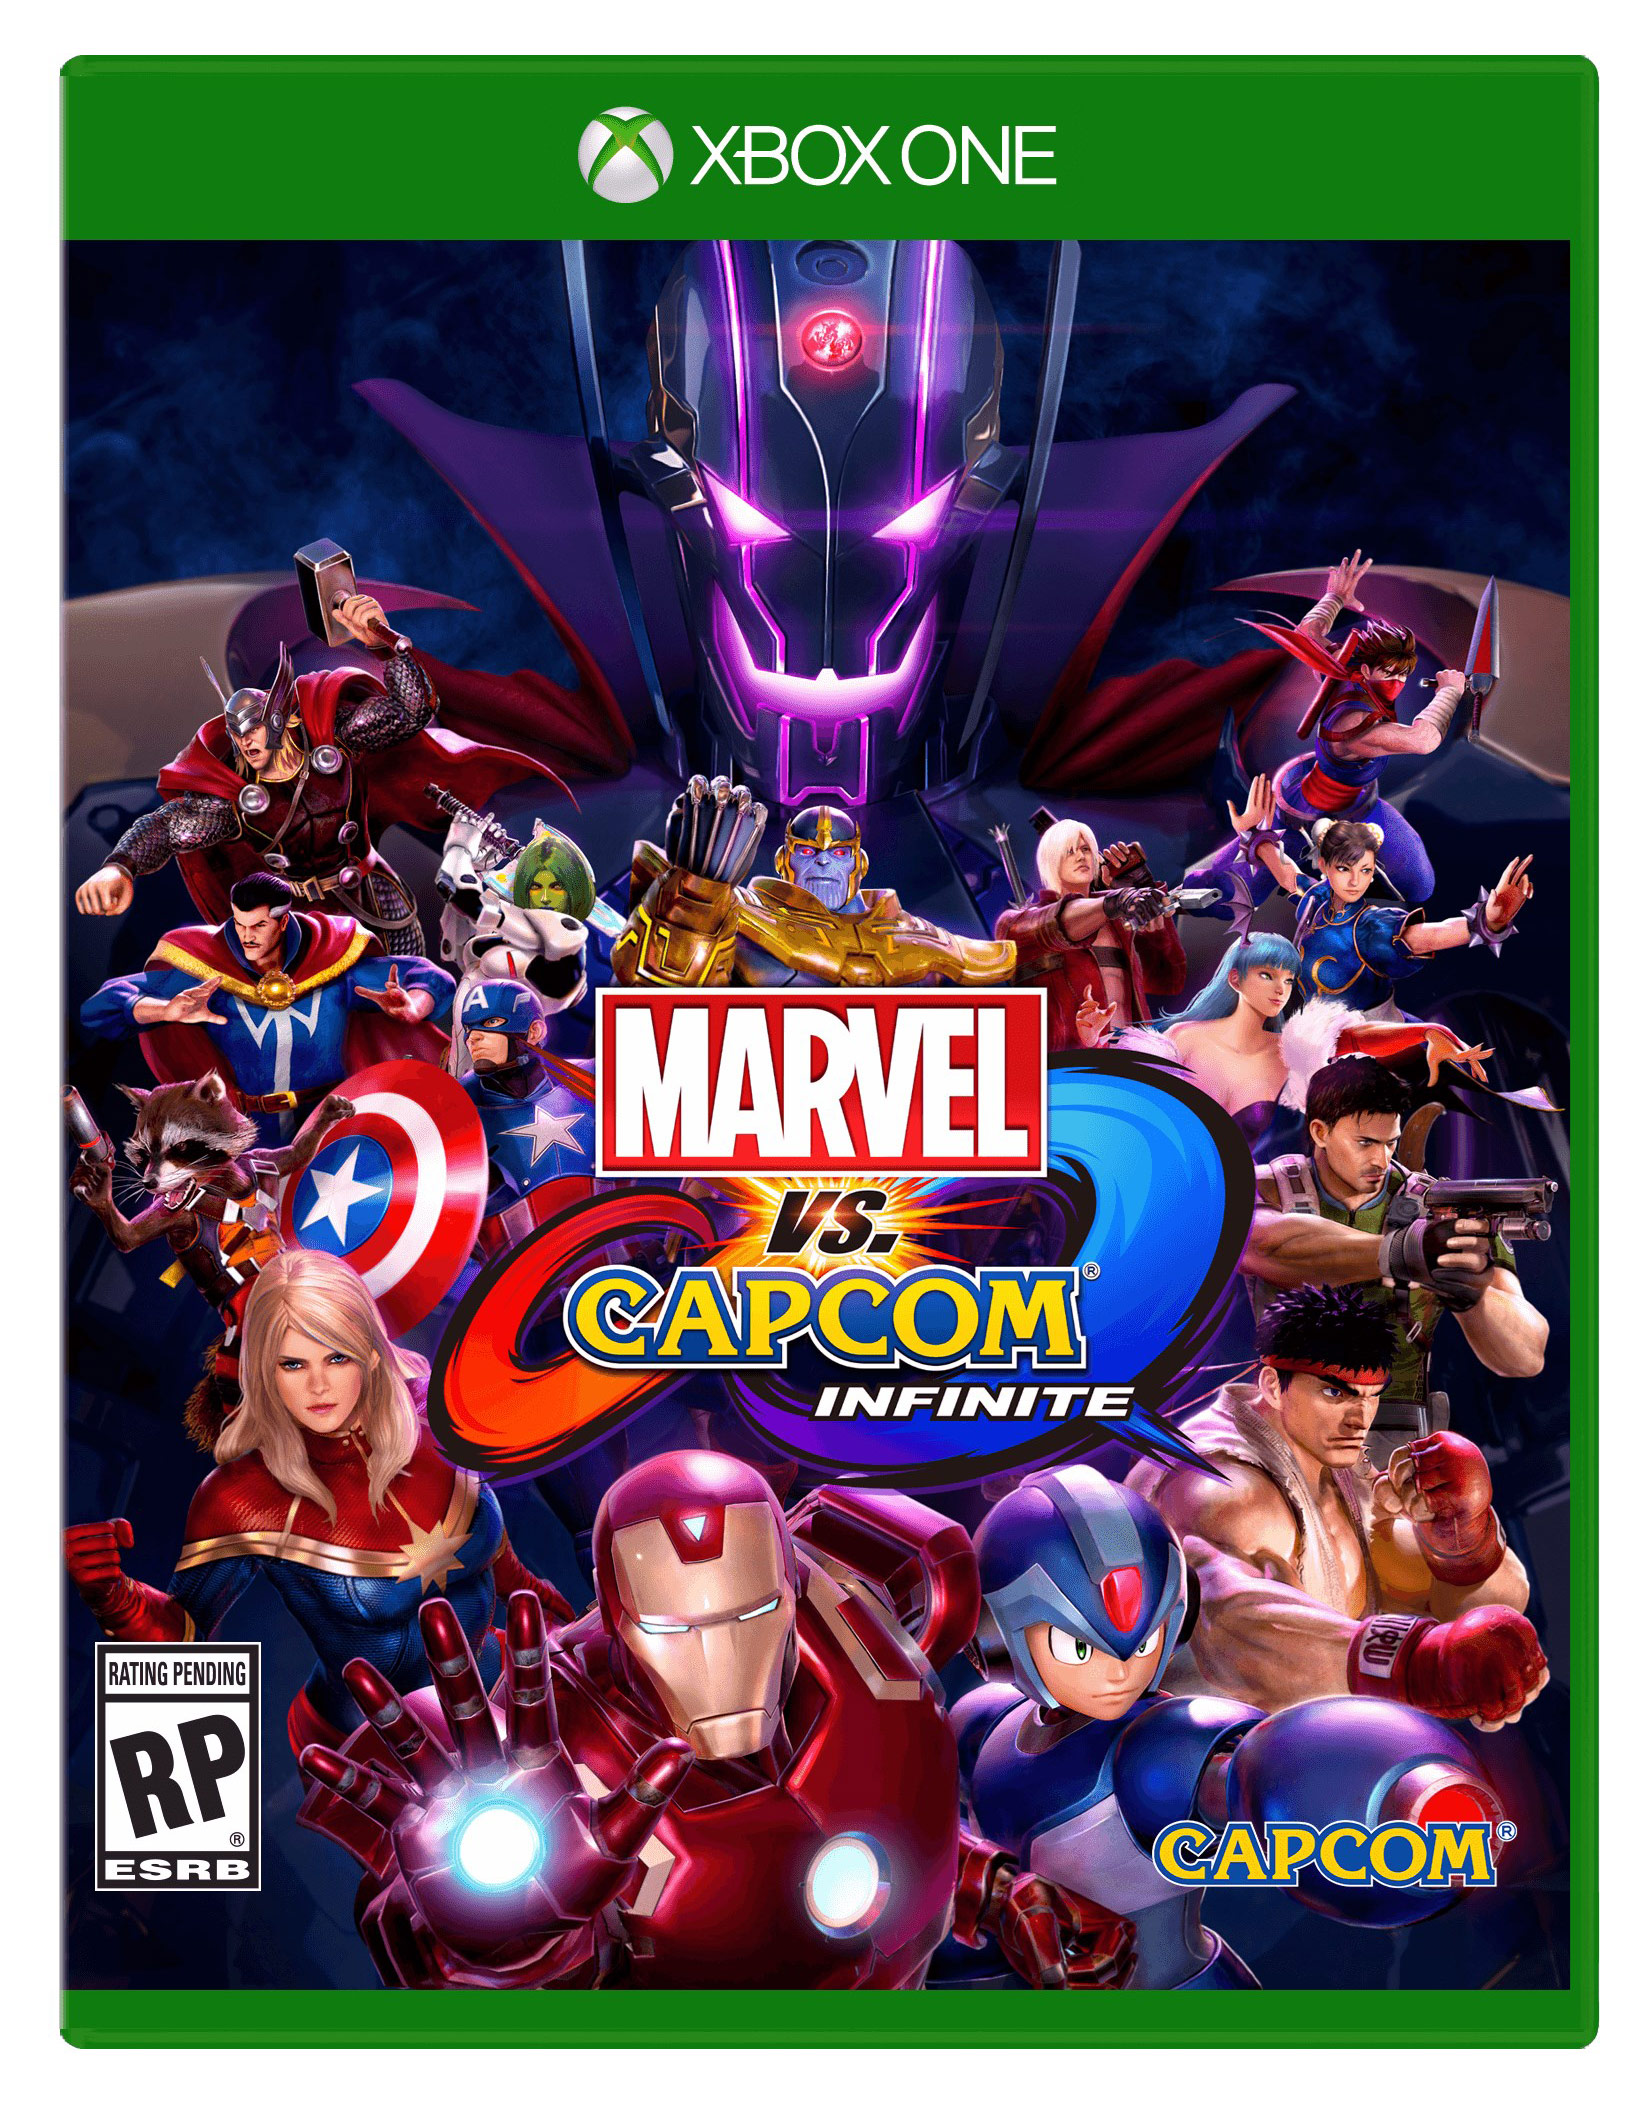 Marvel vs. Capcom: Infinite cover art and new character images from E3 2017 26 out of 26 image gallery